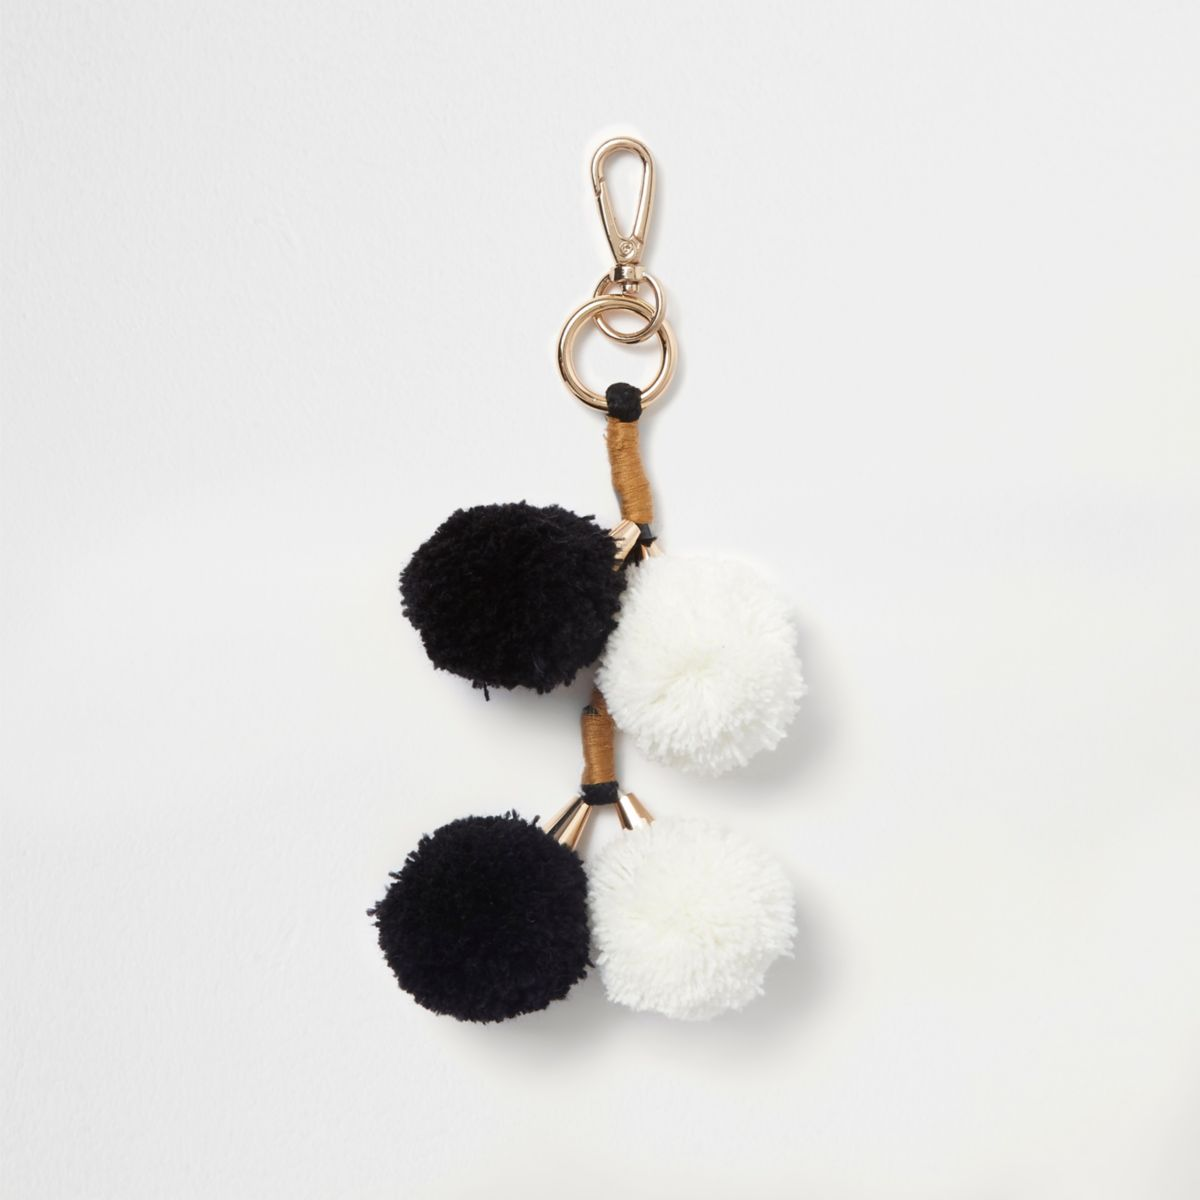 Black and white pom pom charm clip on keyring